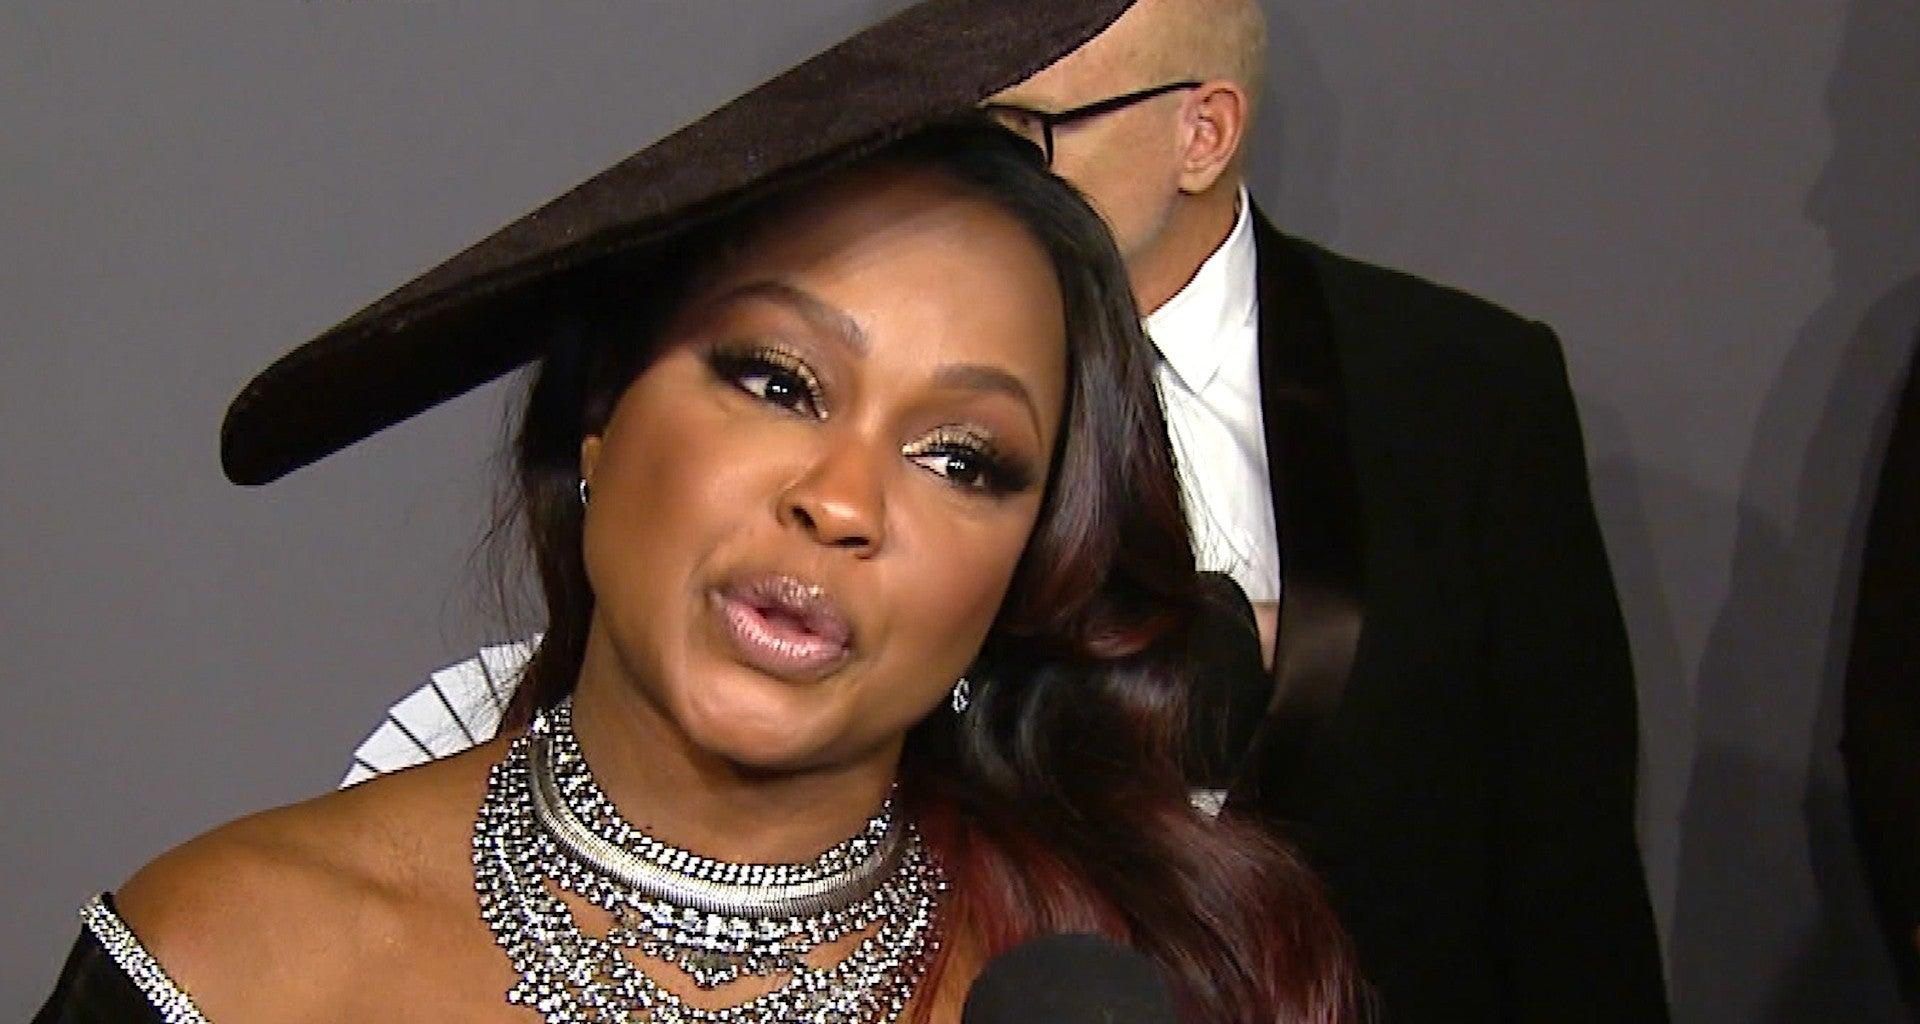 Phaedra Parks Is Flaunting A Massive Cleavage In The Latest Photo Session And Her Fans Are Here For It